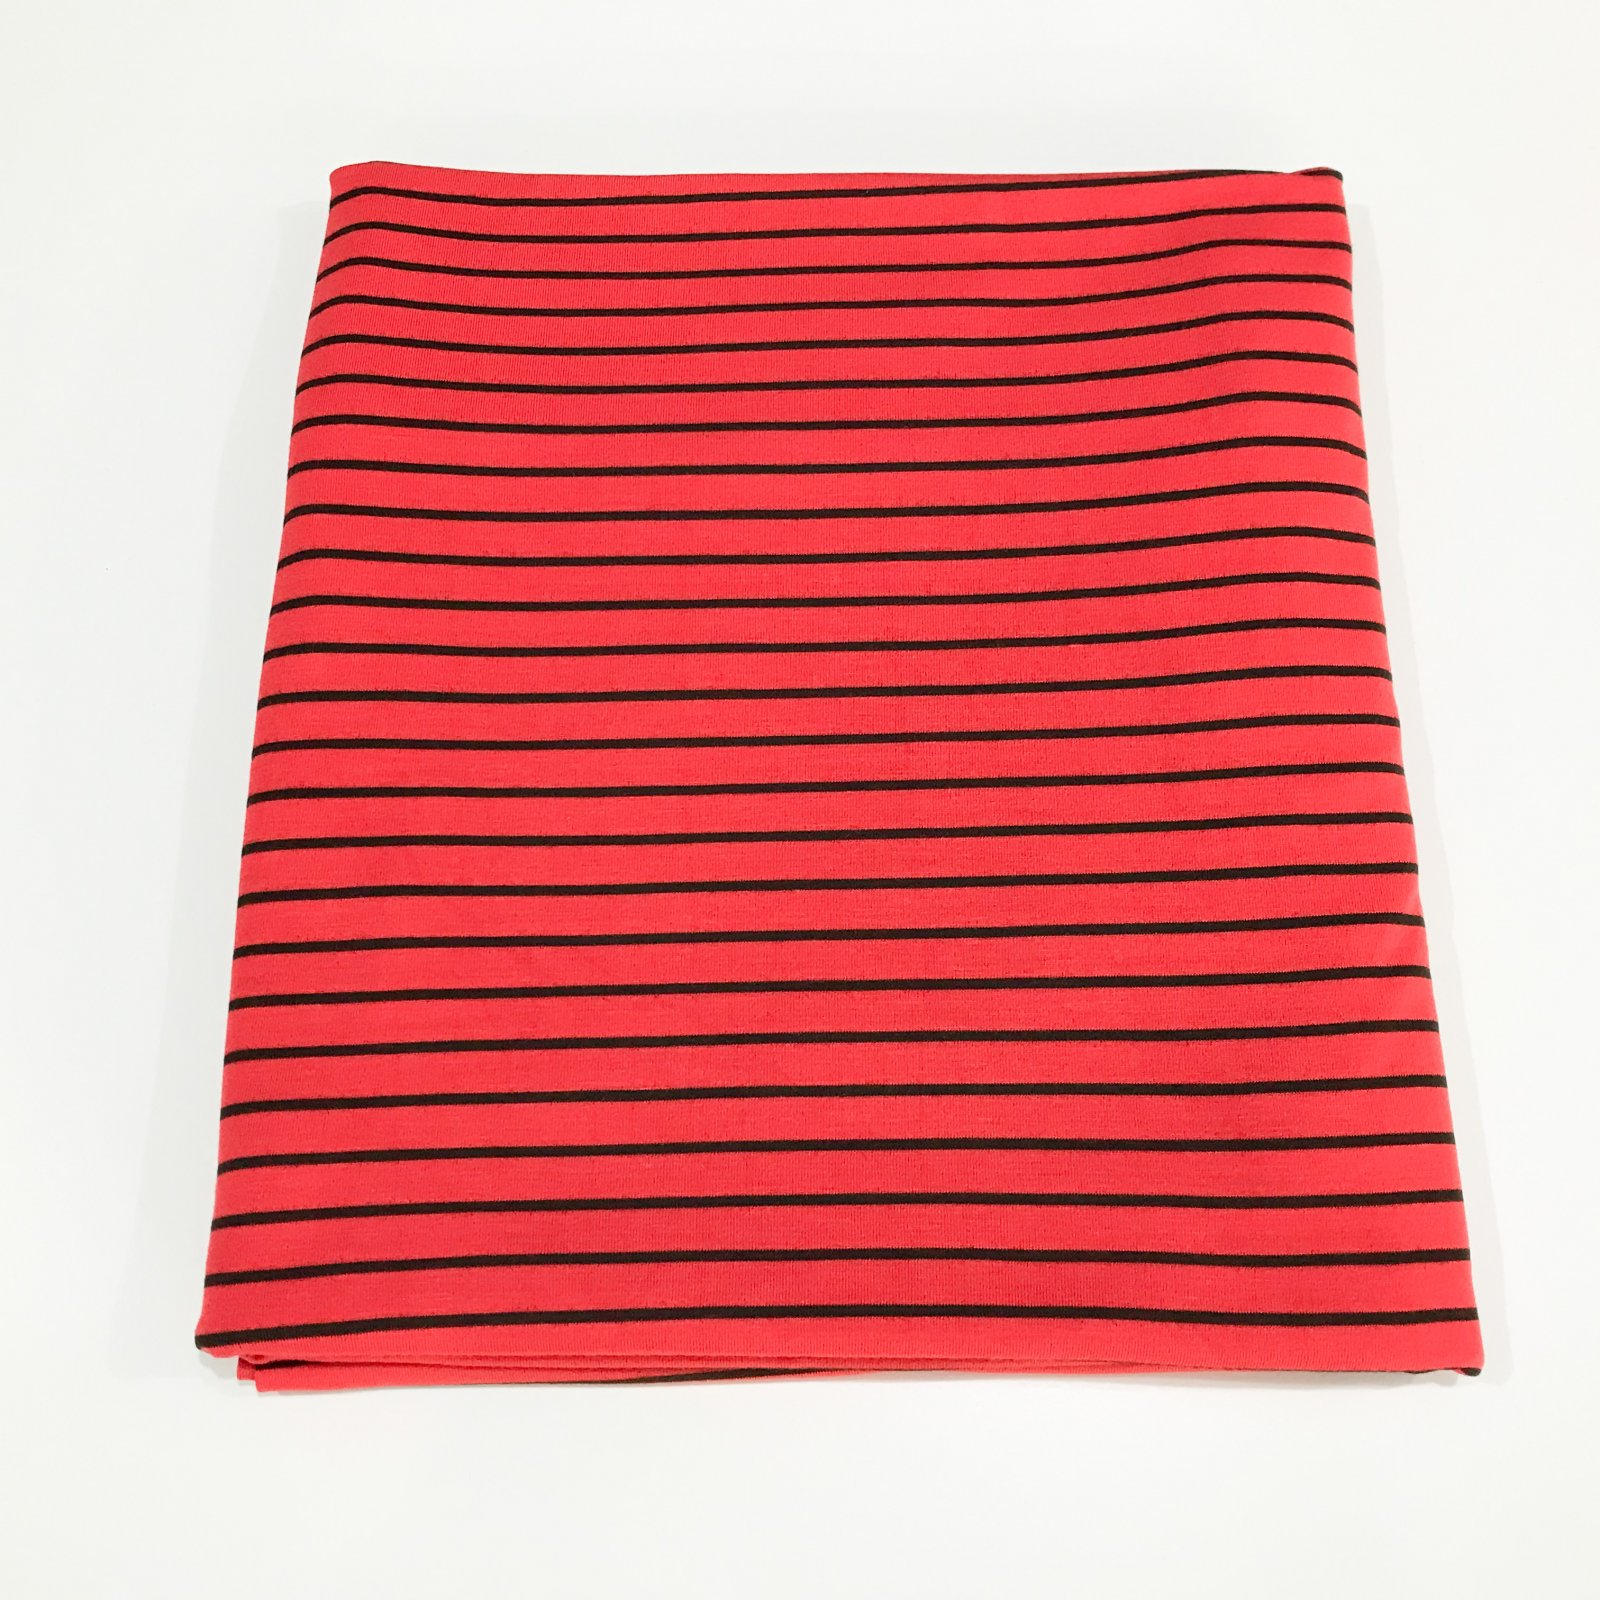 1 1/4 yard - Bamboo Knit Stripe - Red and Black